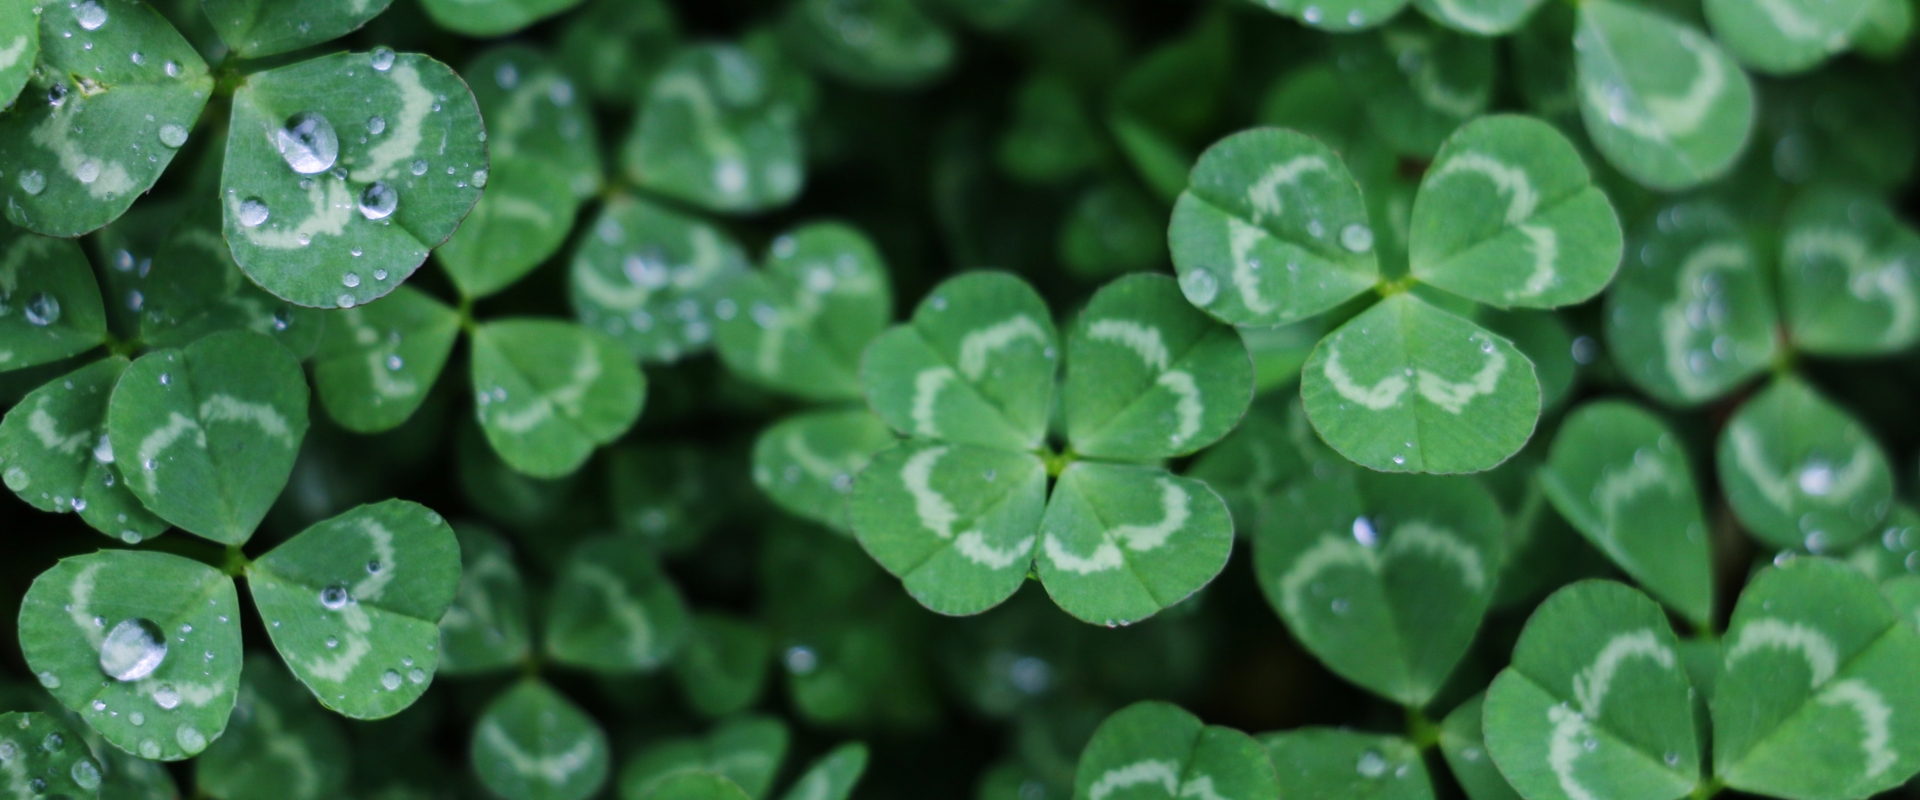 Happy St. Patrick's Day from the TJ Aerospace Team